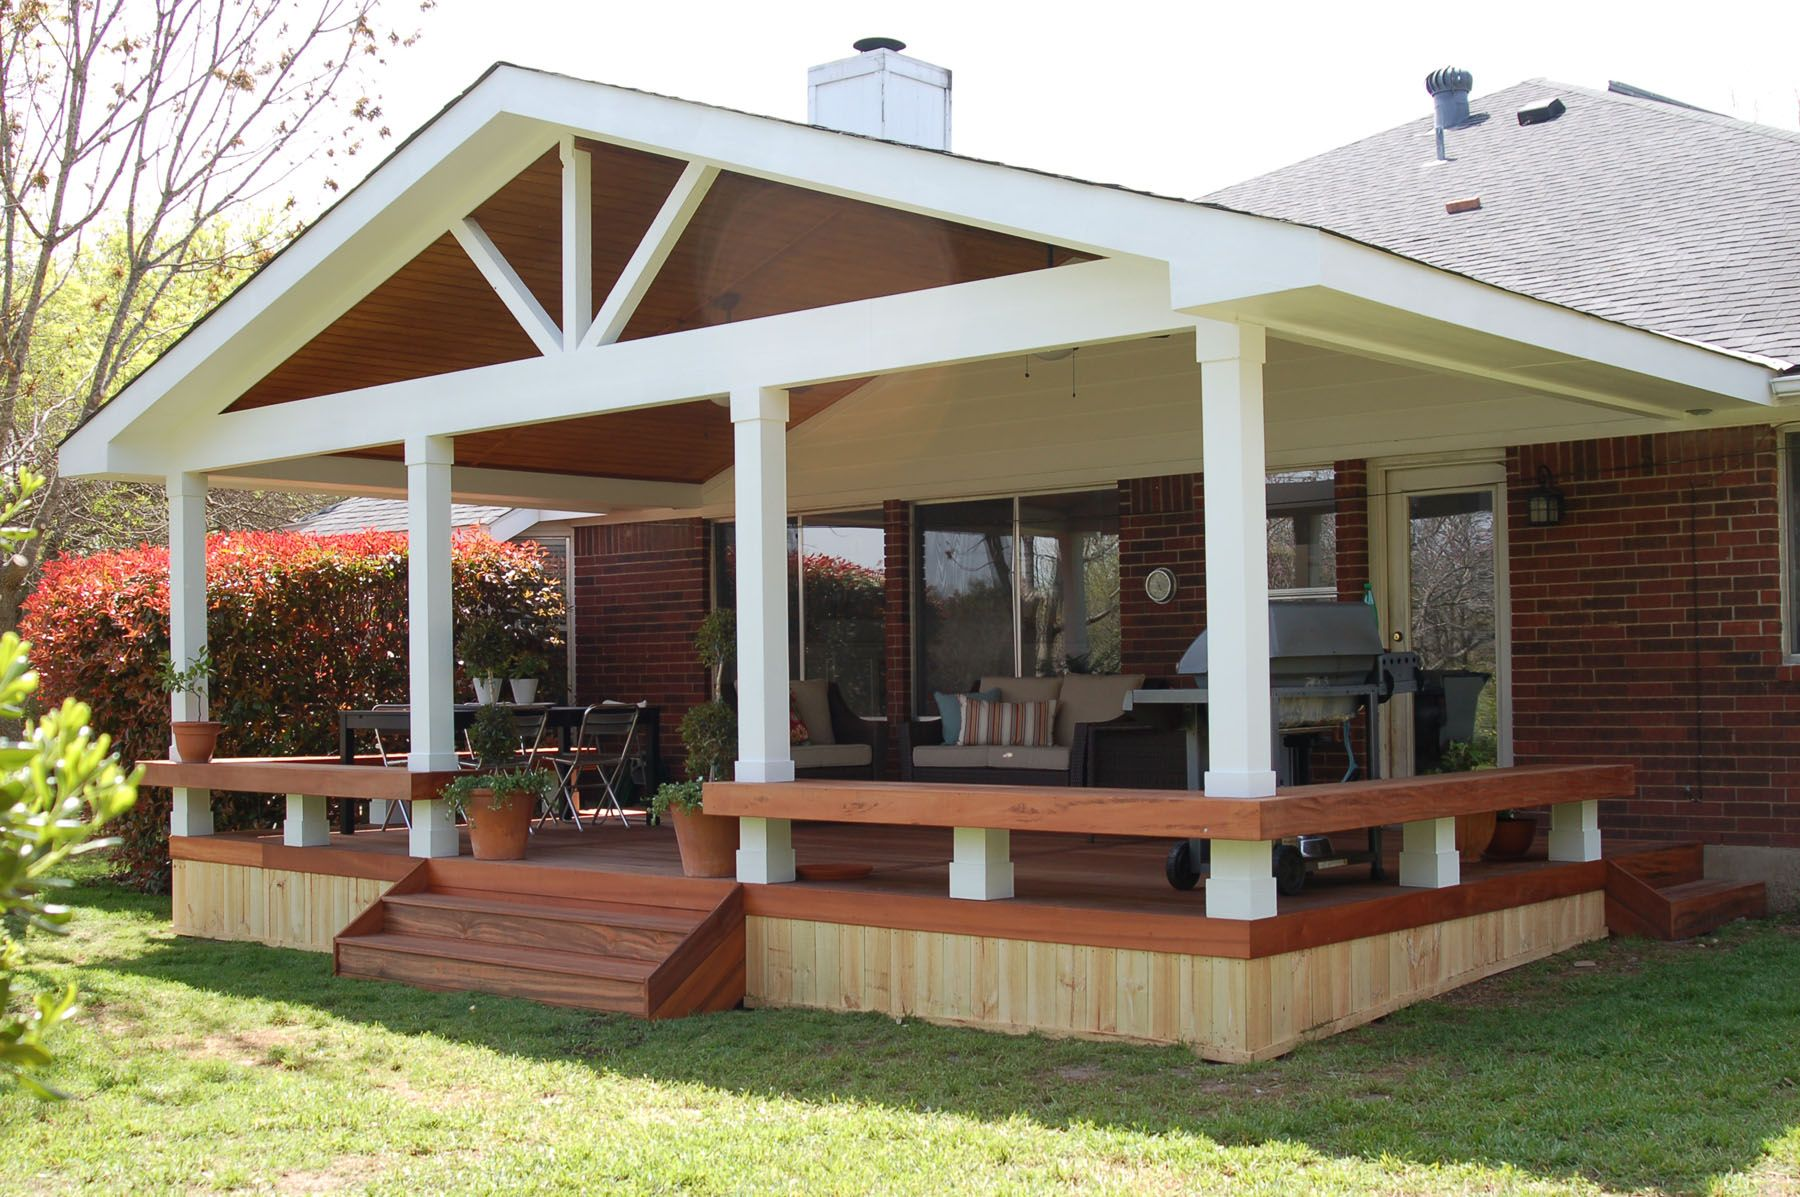 23 Amazing Covered Deck Ideas To Inspire You Check It Out Covered Patio Design Porch Design Covered Deck Designs